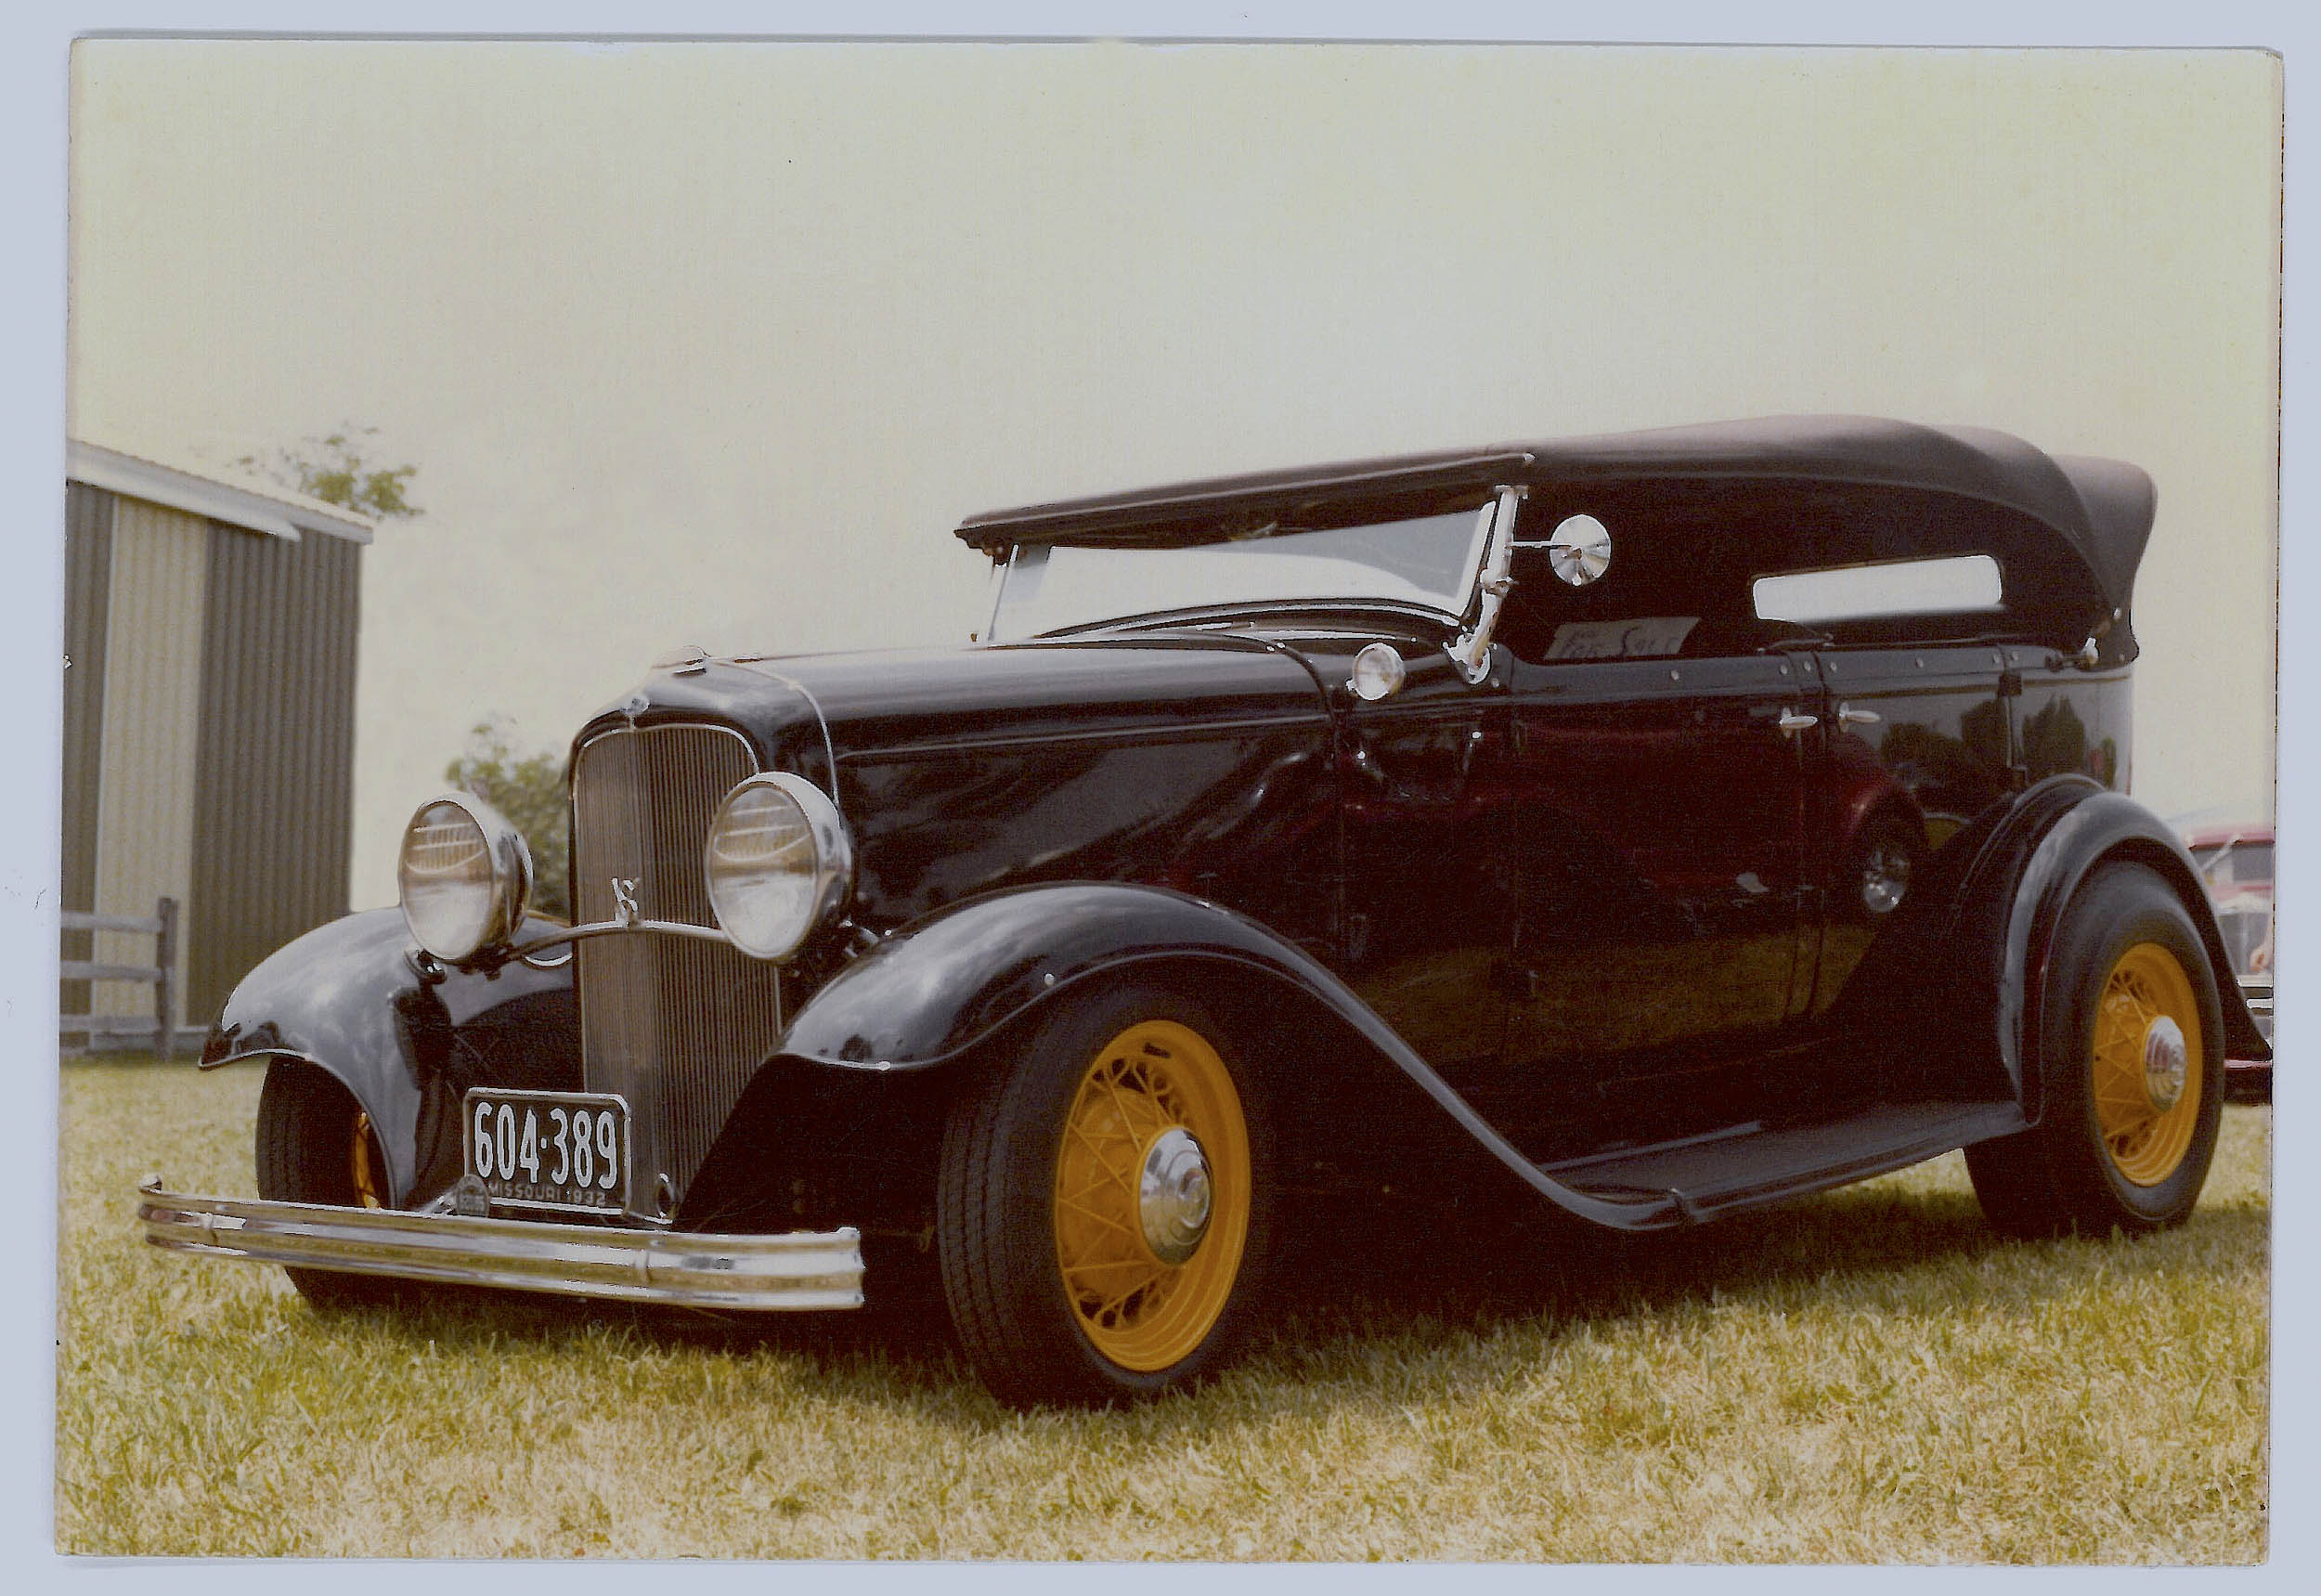 Roger Bell's 1932 Ford phaeton was built in 1982.